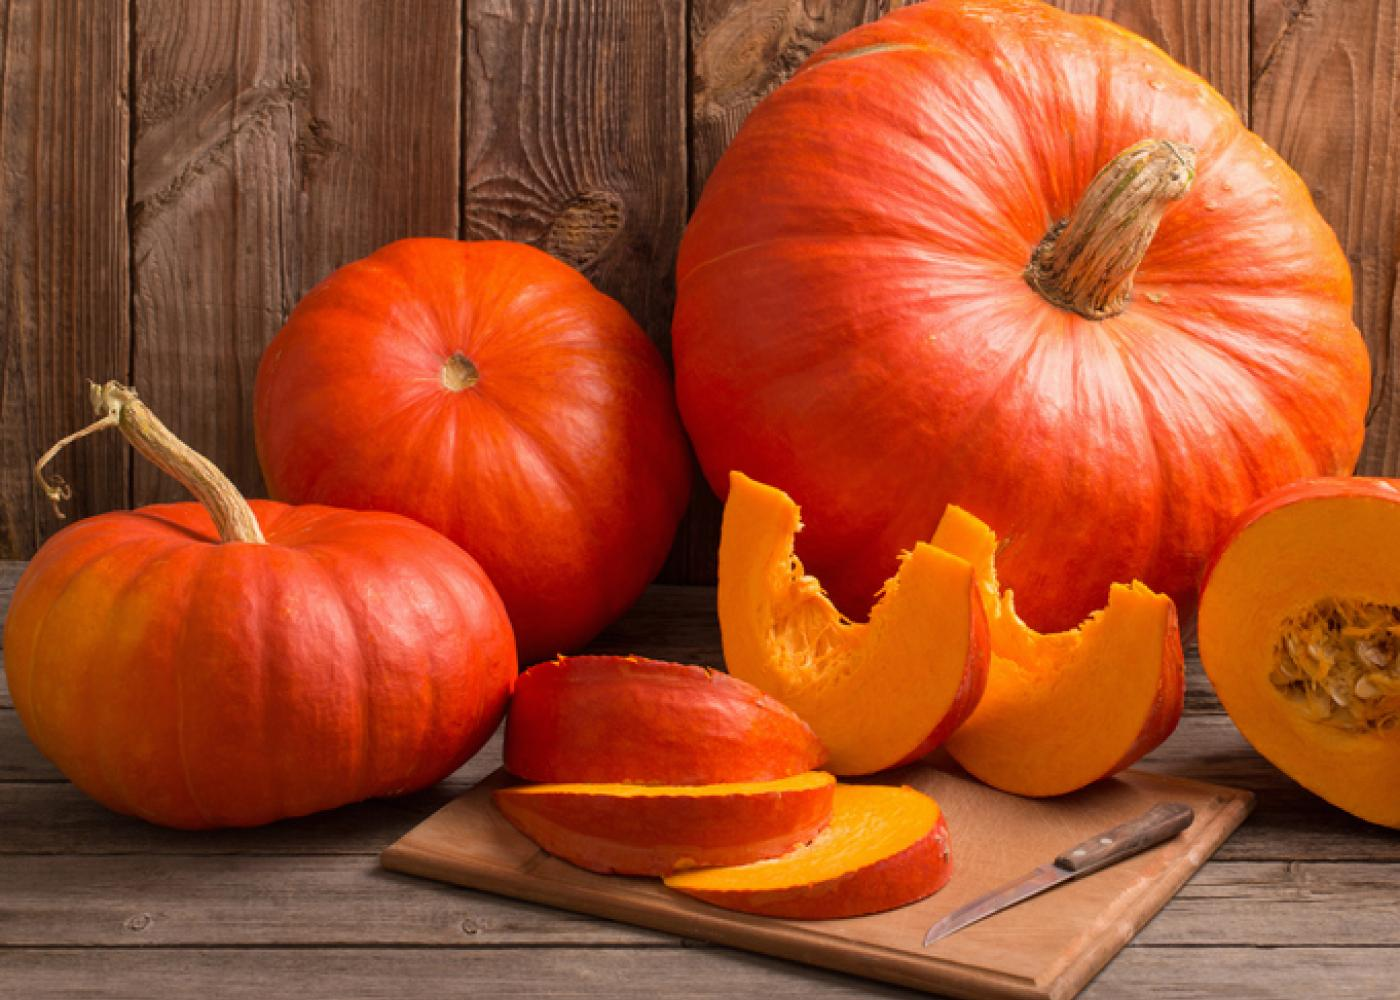 whole and sliced pumpkins